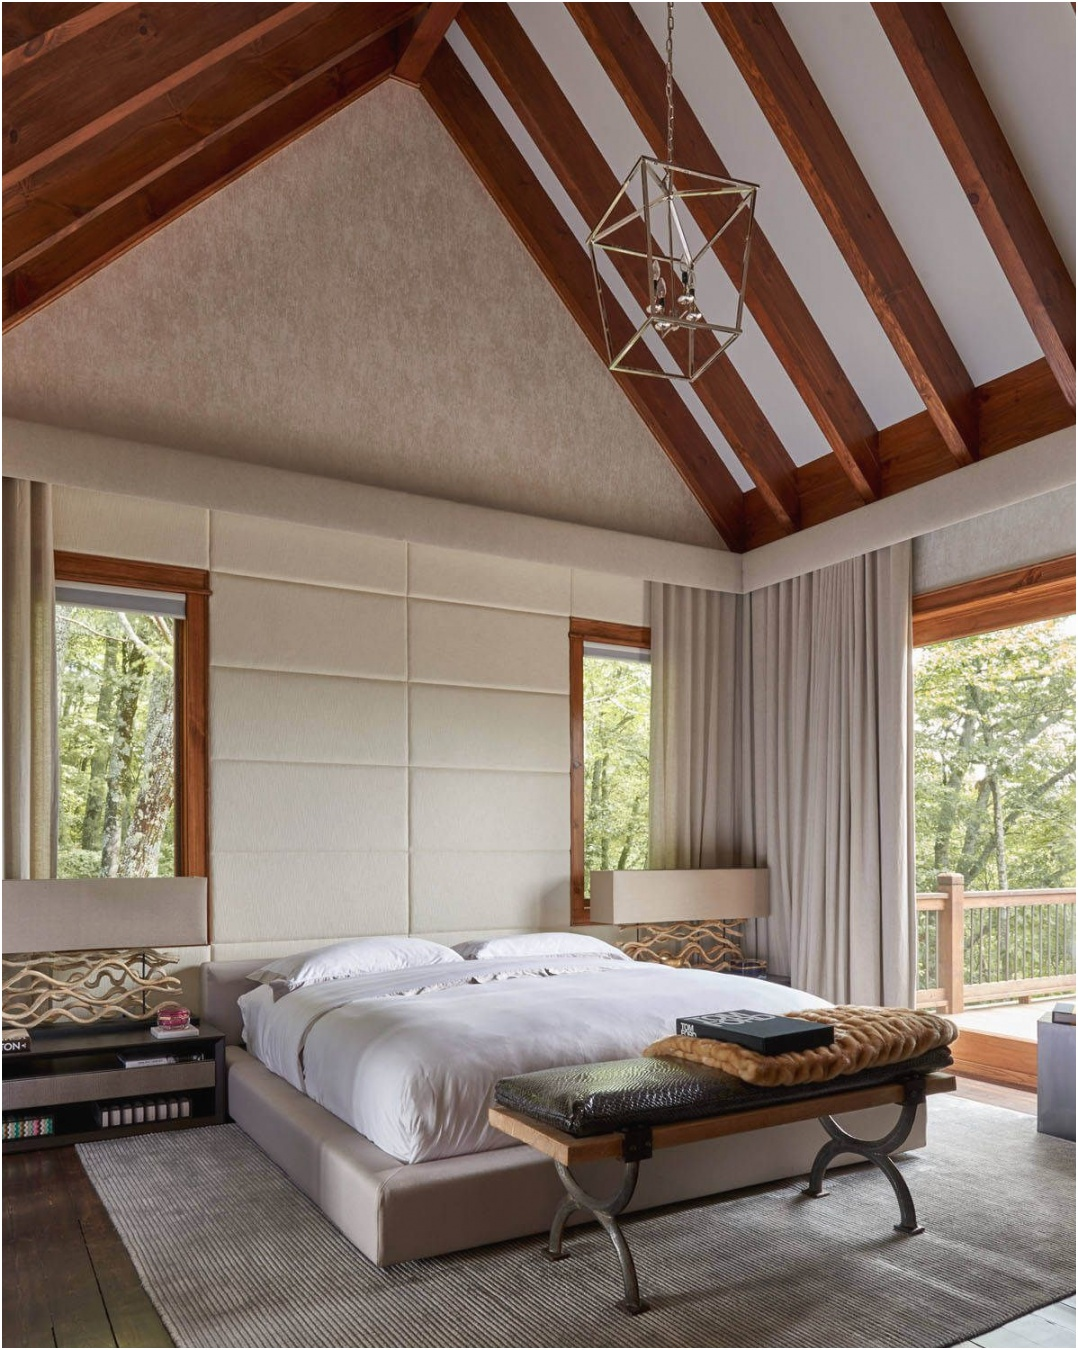 Modern bedroom with a platform bed and vaulted ceiling